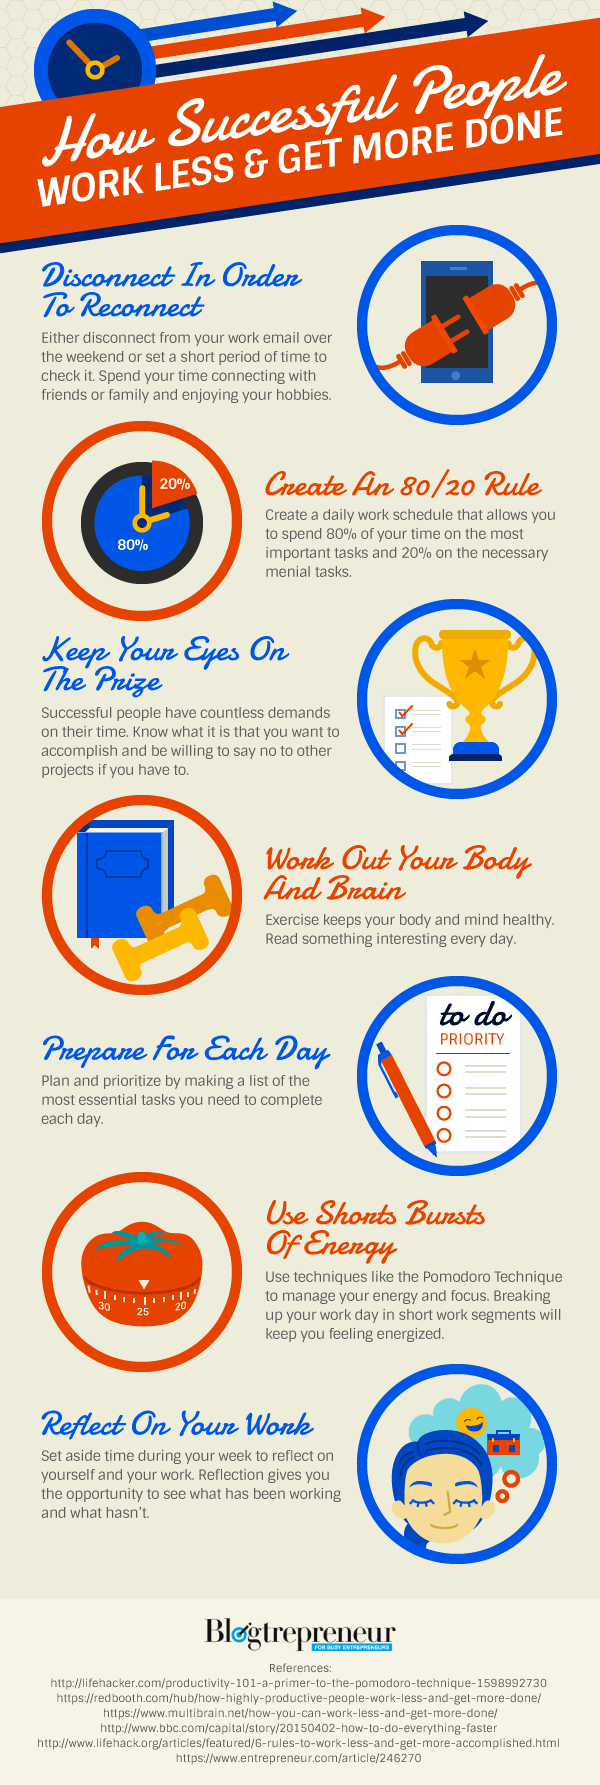 How Successful People Work Less and Get More Done Infographic